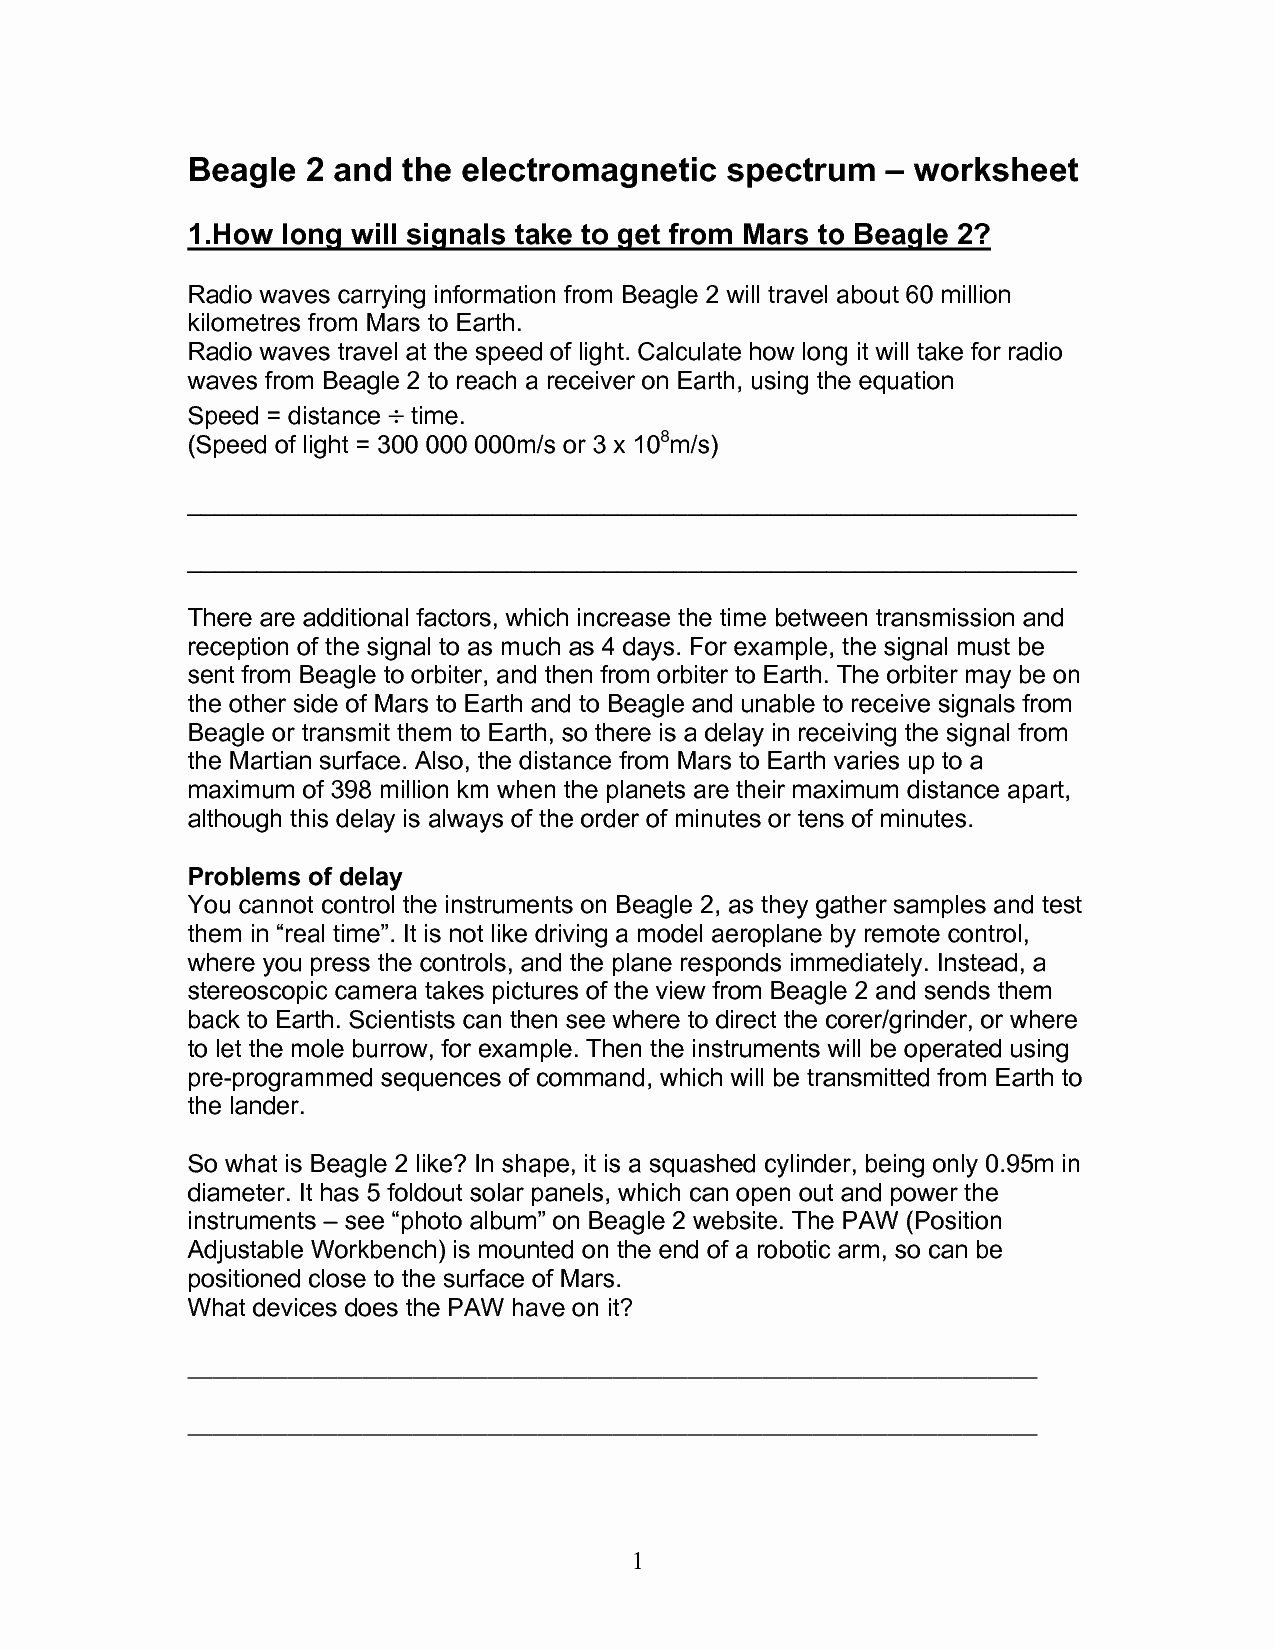 Electromagnetic Spectrum Worksheet High School New 13 Best Of Light Worksheets for Middle School